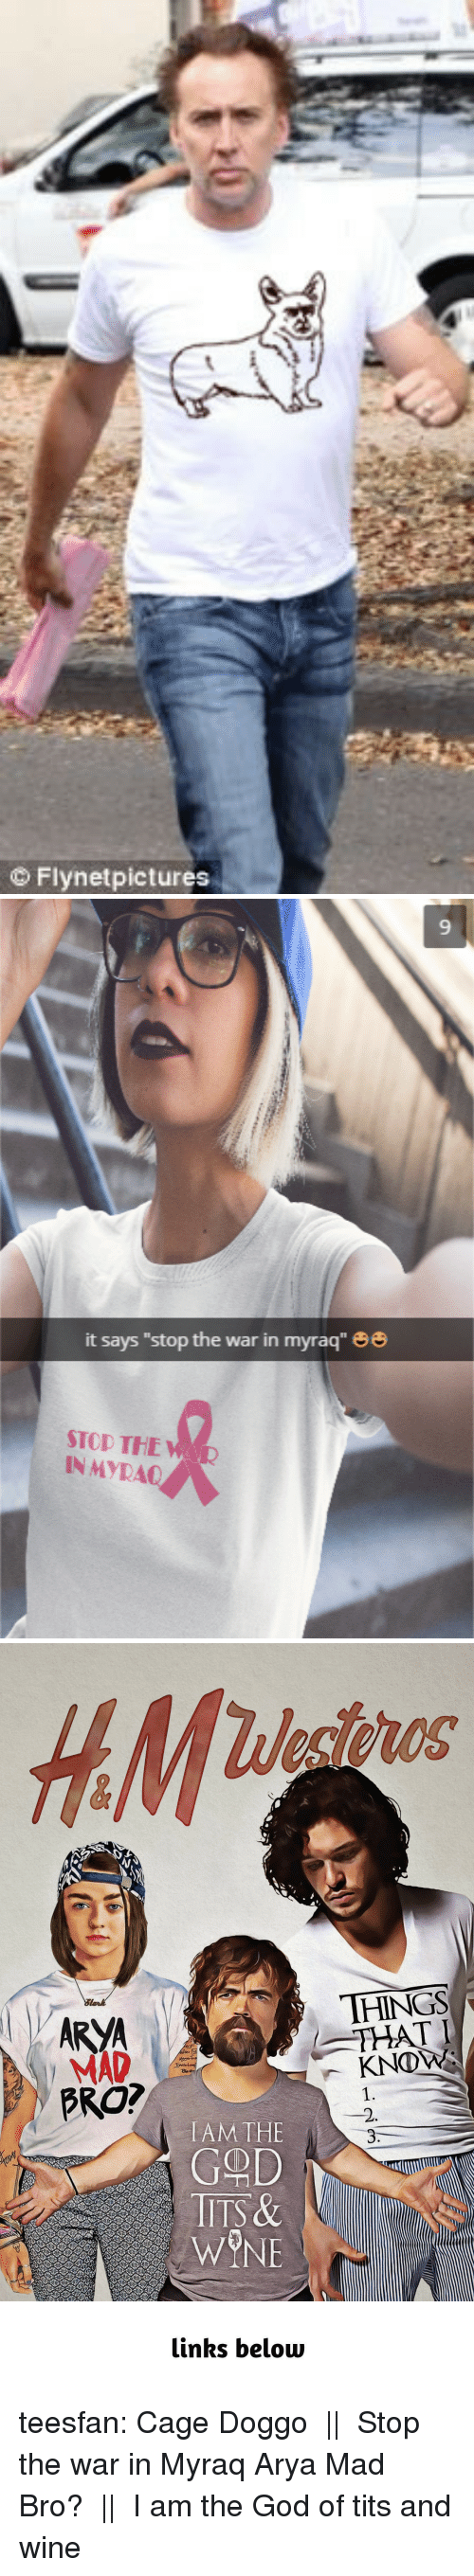 "God, Tits, and Tumblr: O Flynetpictures   it says ""stop the war in myraq""  STOD THE  INMYRA   HINGS  MAD  BRO?  IAM THE  GOD  TITS&   inks below teesfan: Cage Doggo  